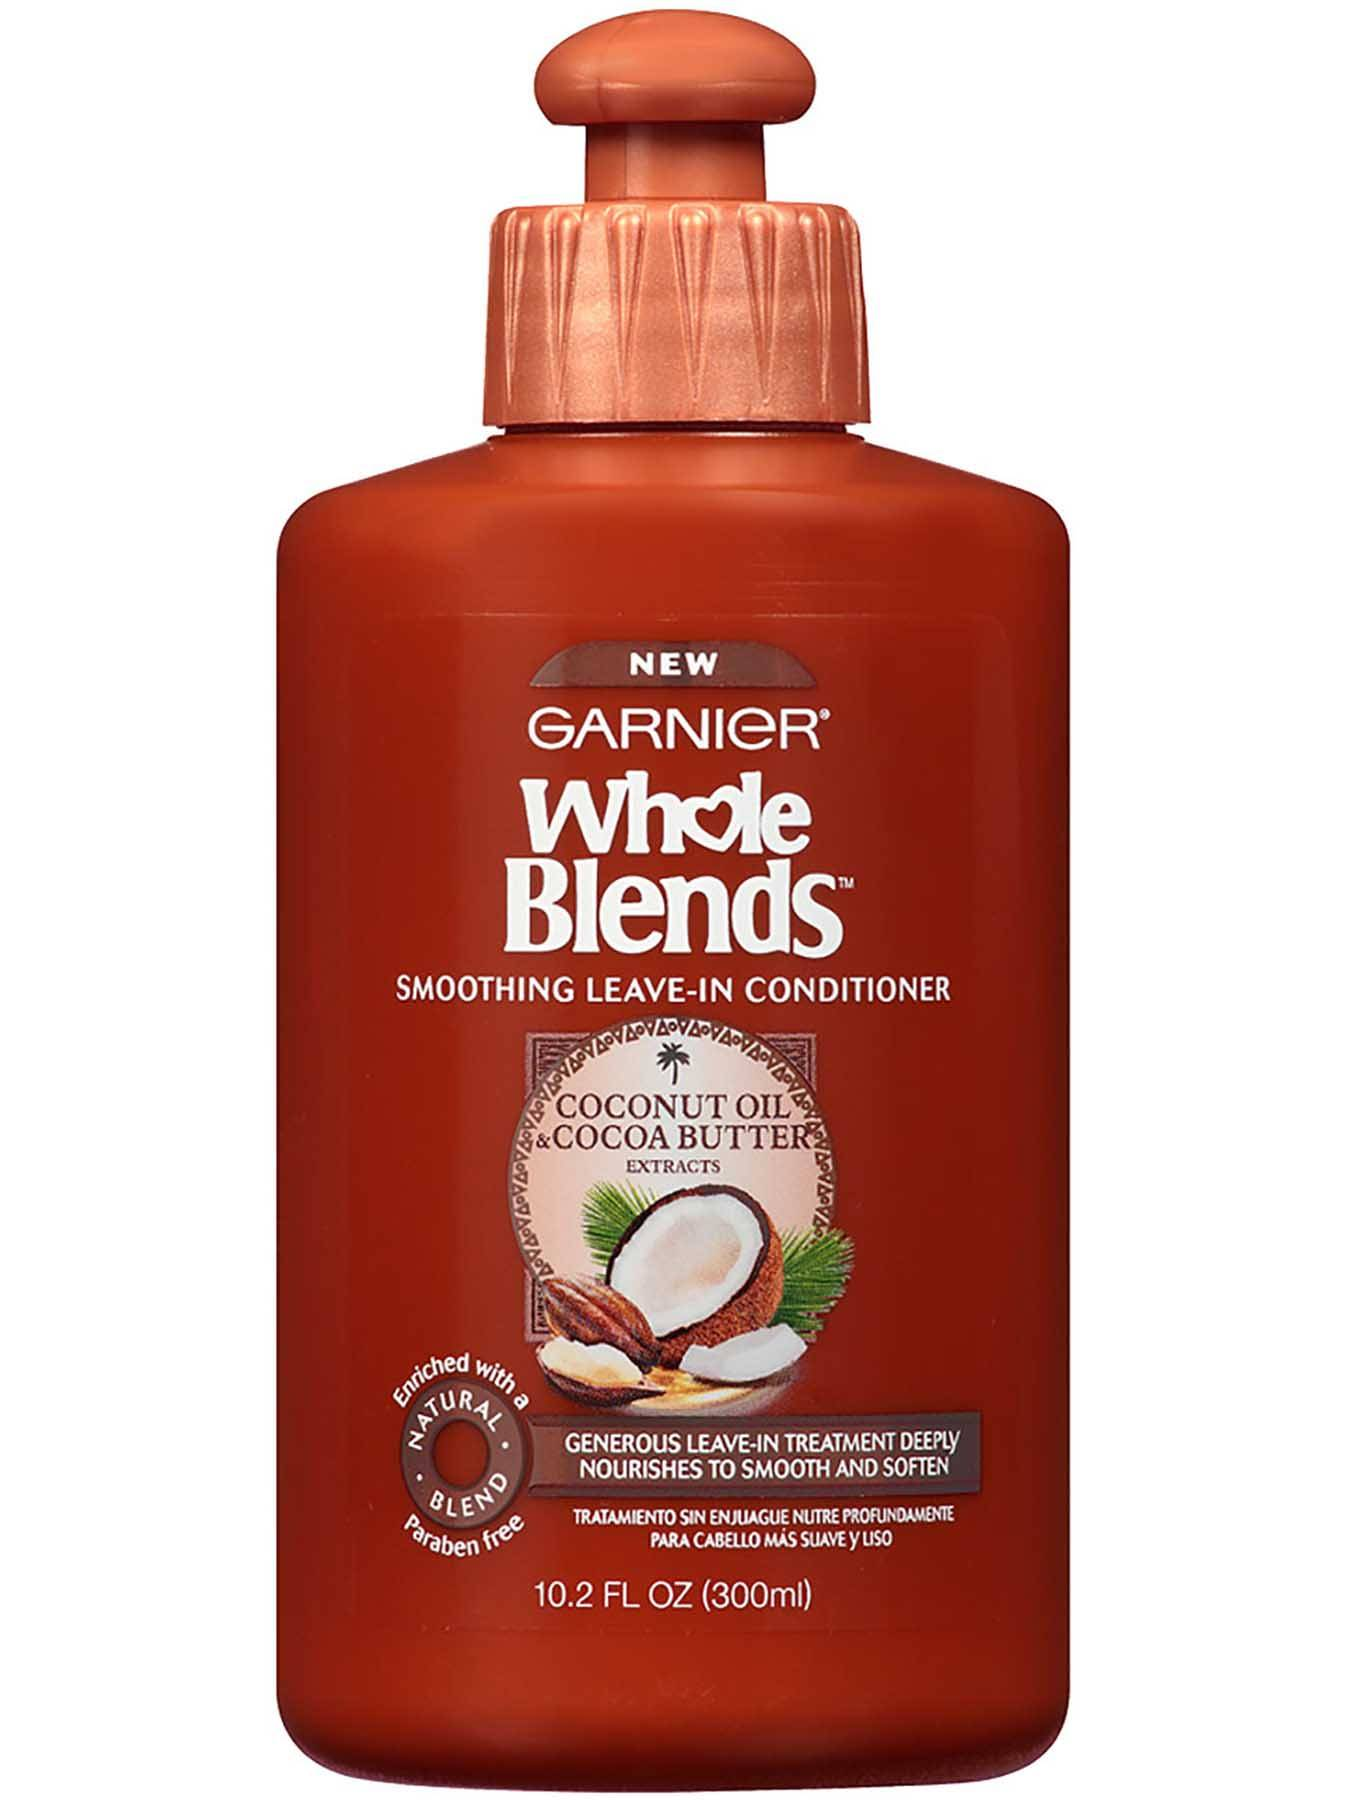 Coconut Oil Amp Cocoa Butter Smoothing Leave In Conditioner